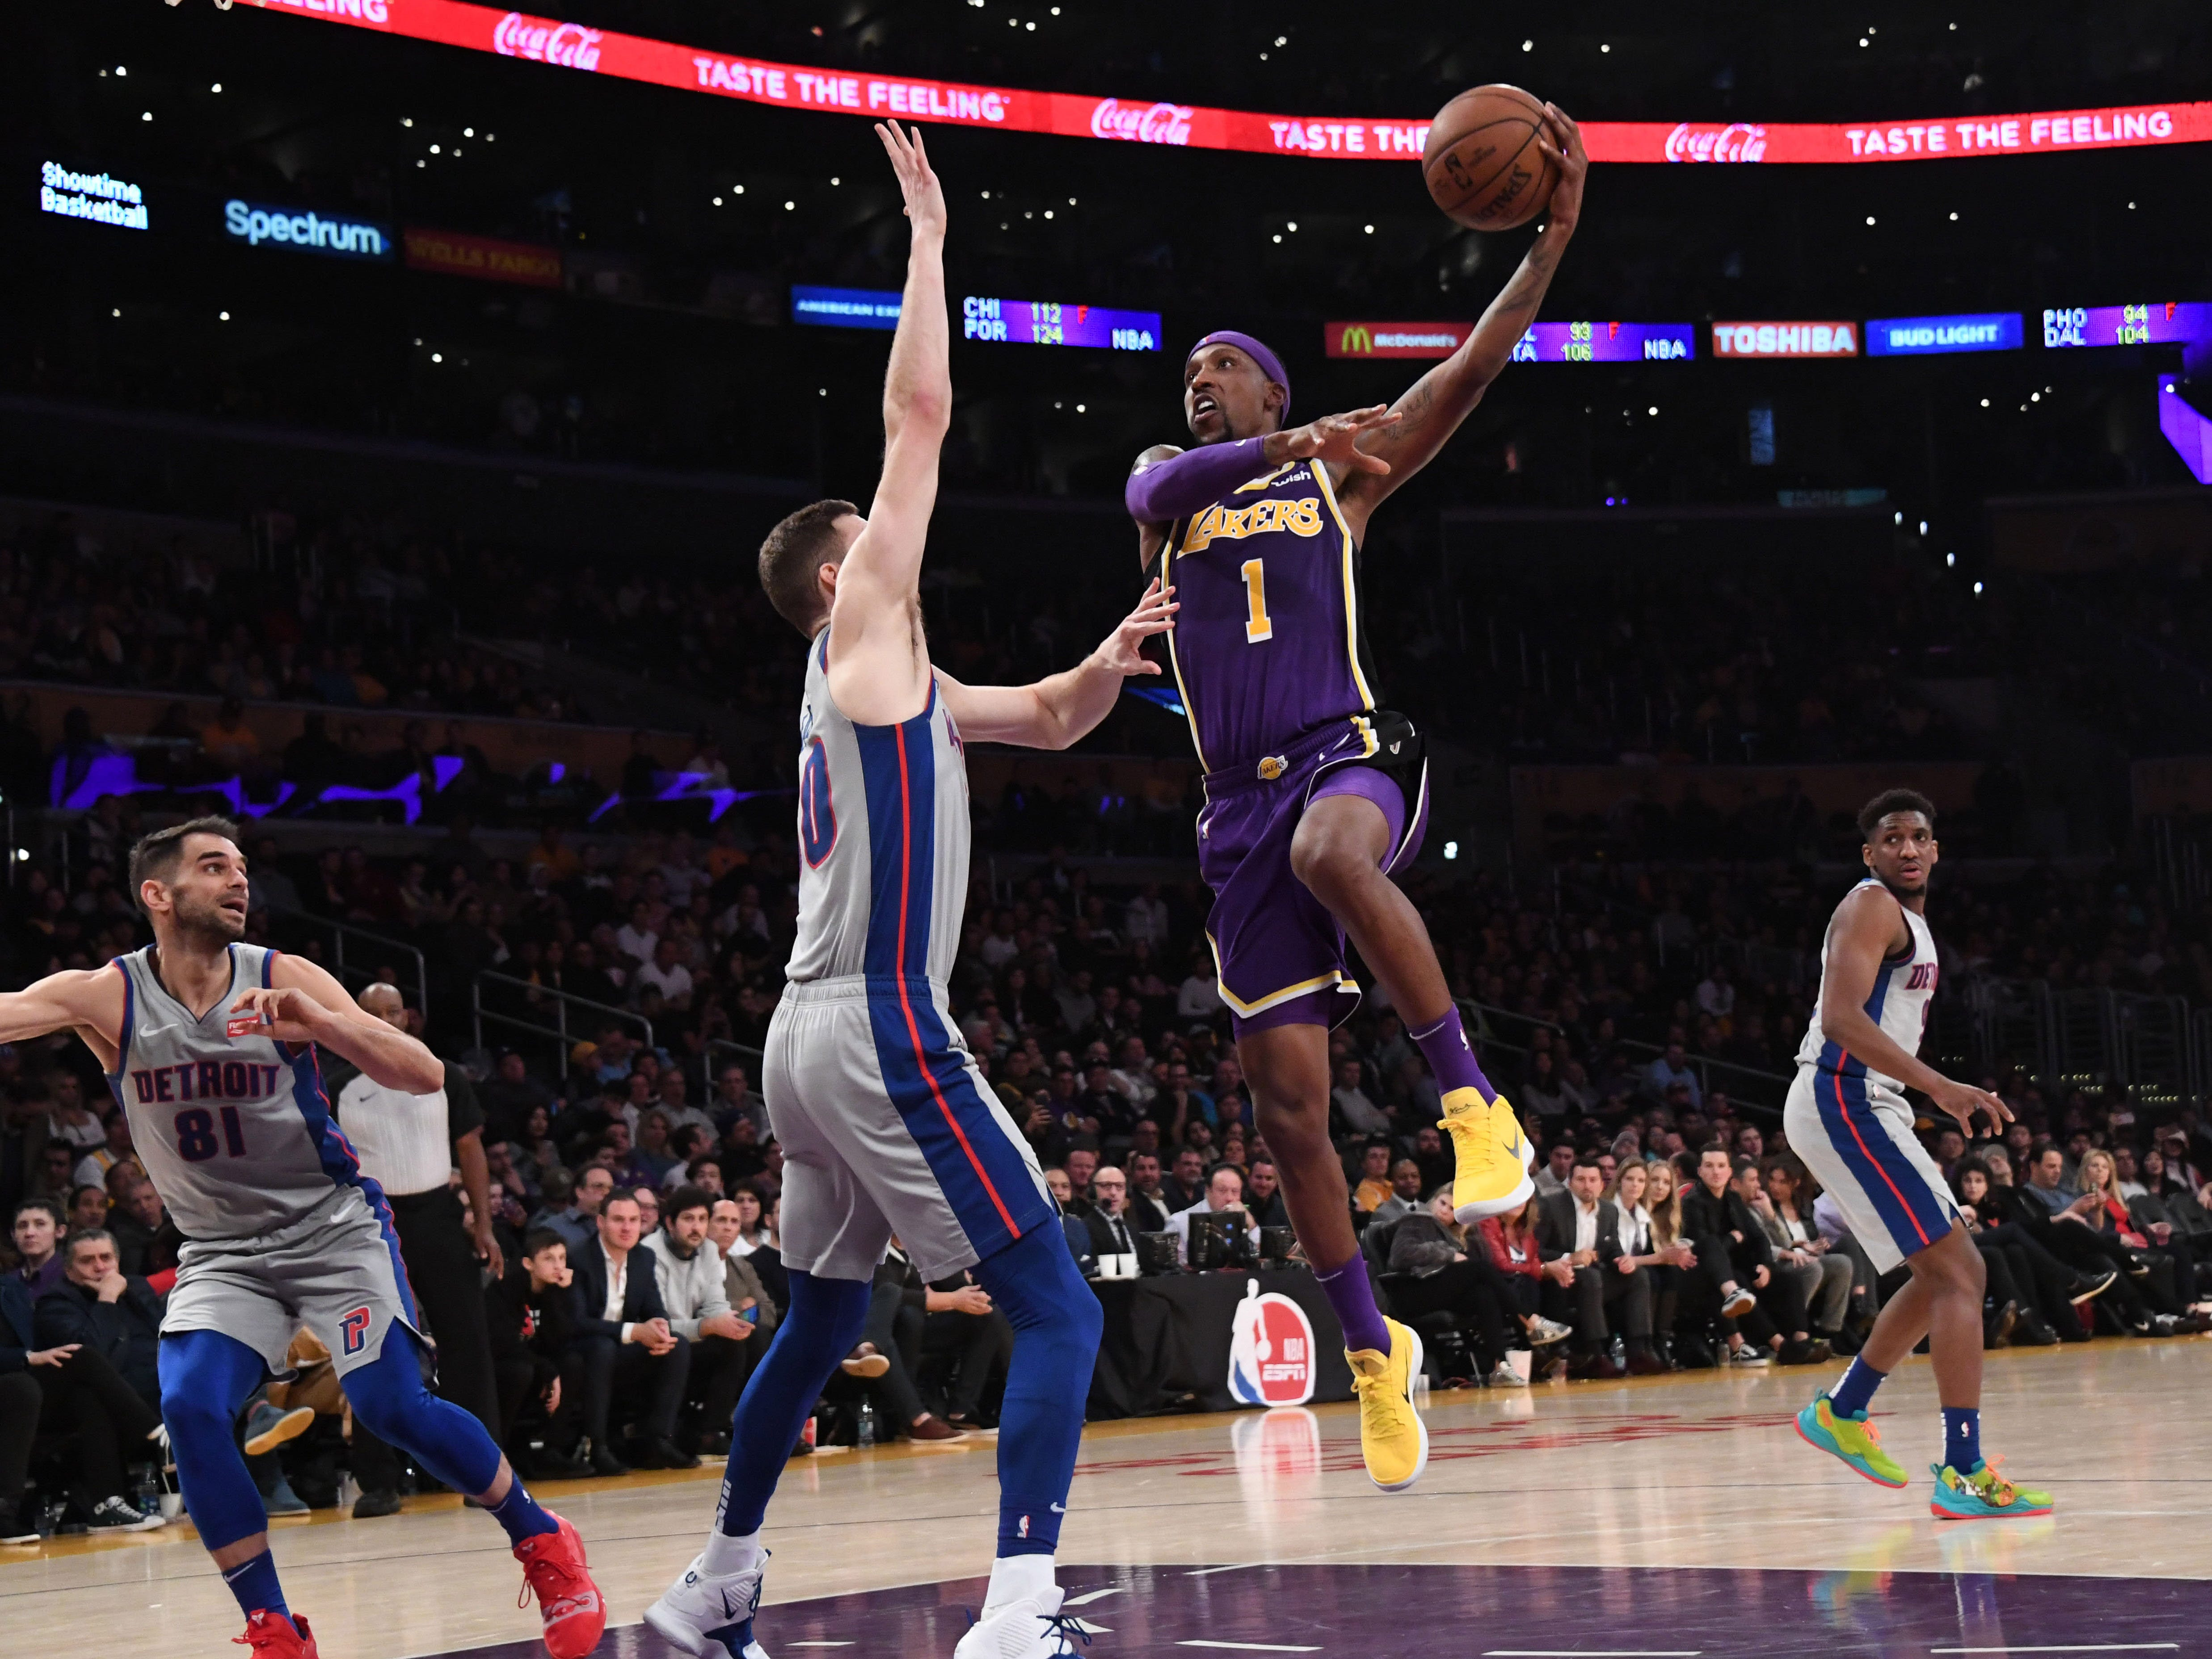 Los Angeles Lakers guard Kentavious Caldwell-Pope is defended by Detroit Pistons forward Jon Leuer at the Staples Center, Jan. 9, 2019.